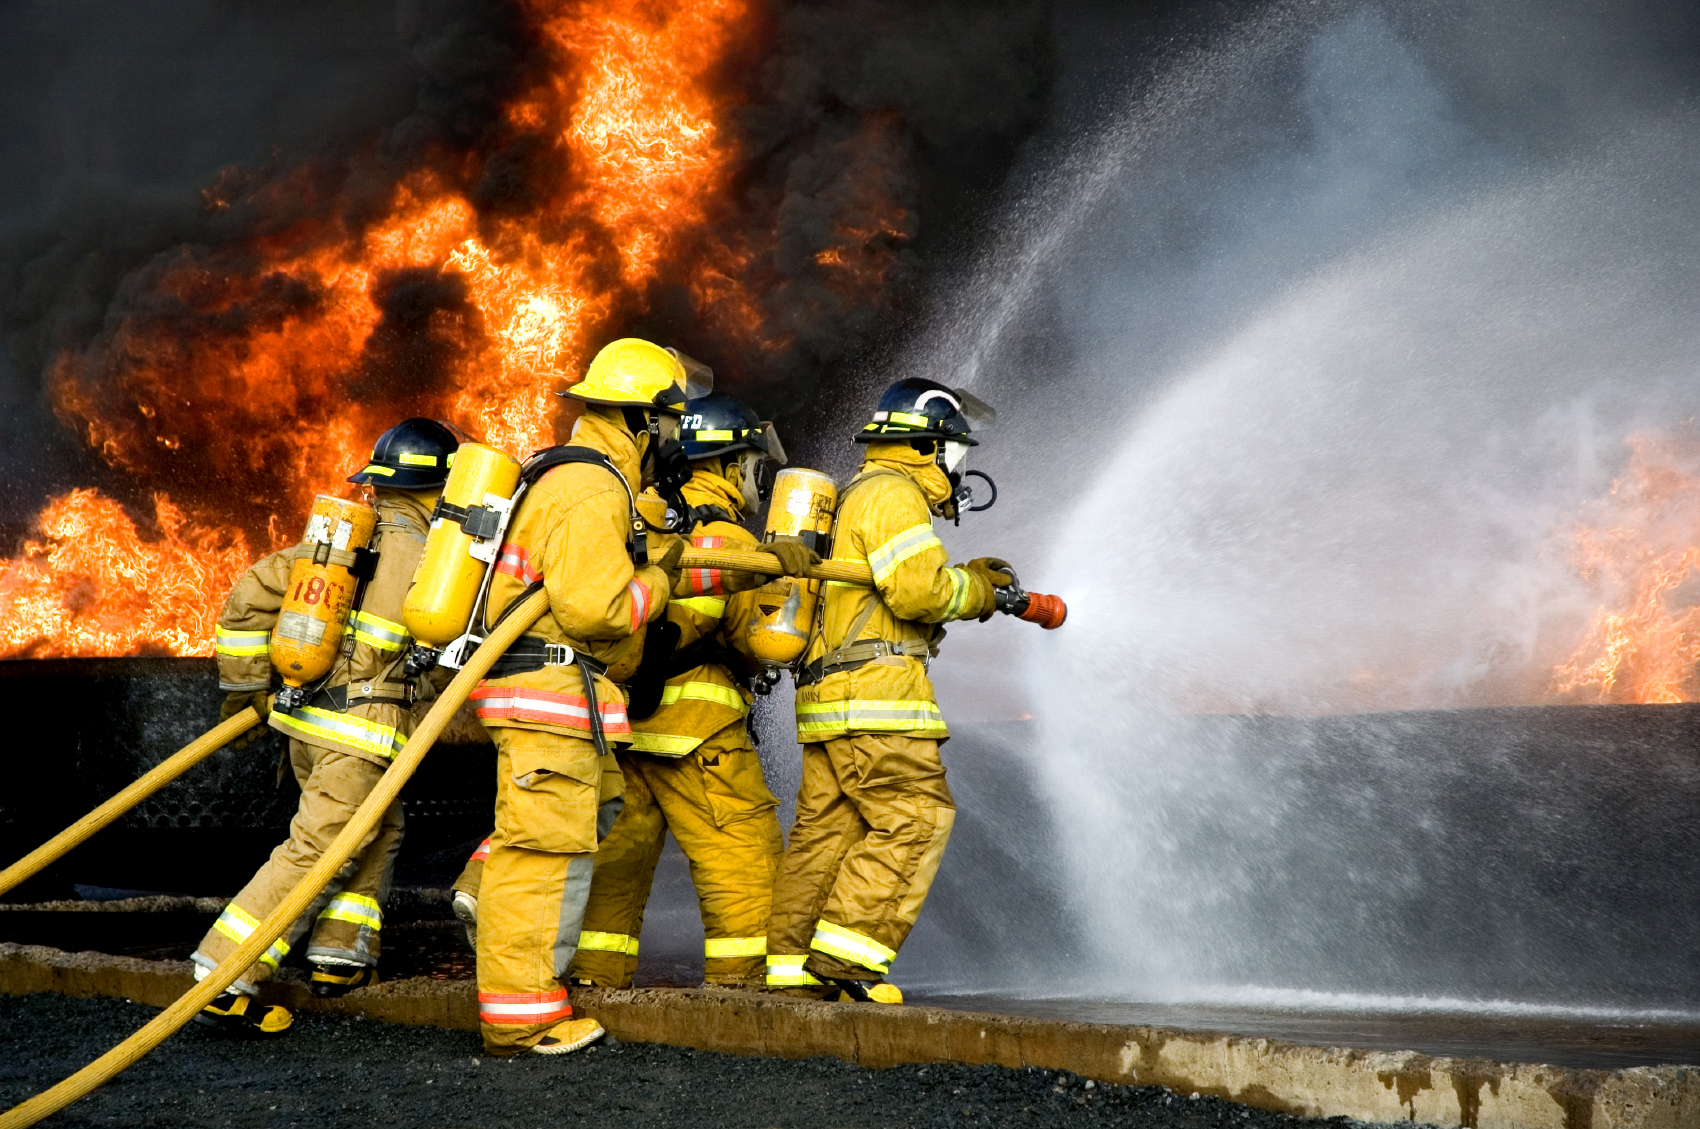 Firefighters spraying water into a fire